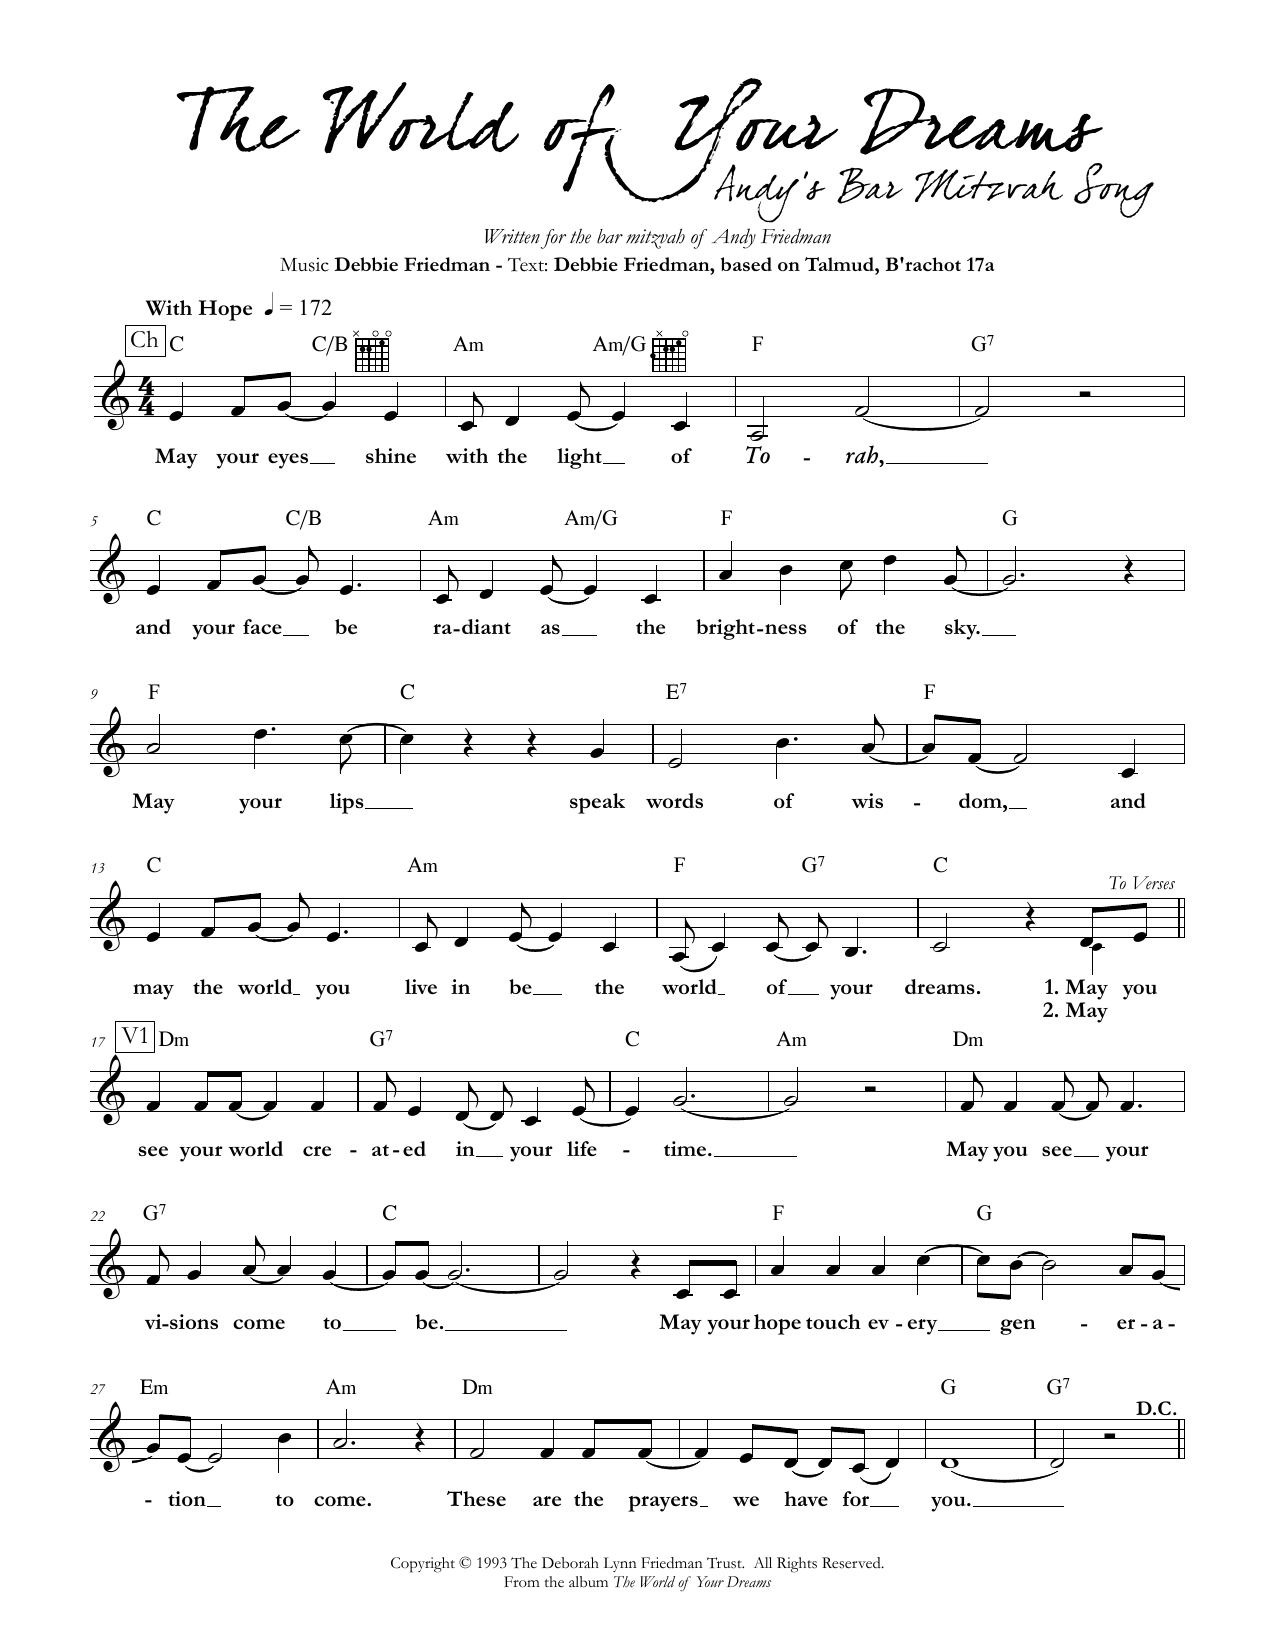 The World of Your Dreams Sheet Music